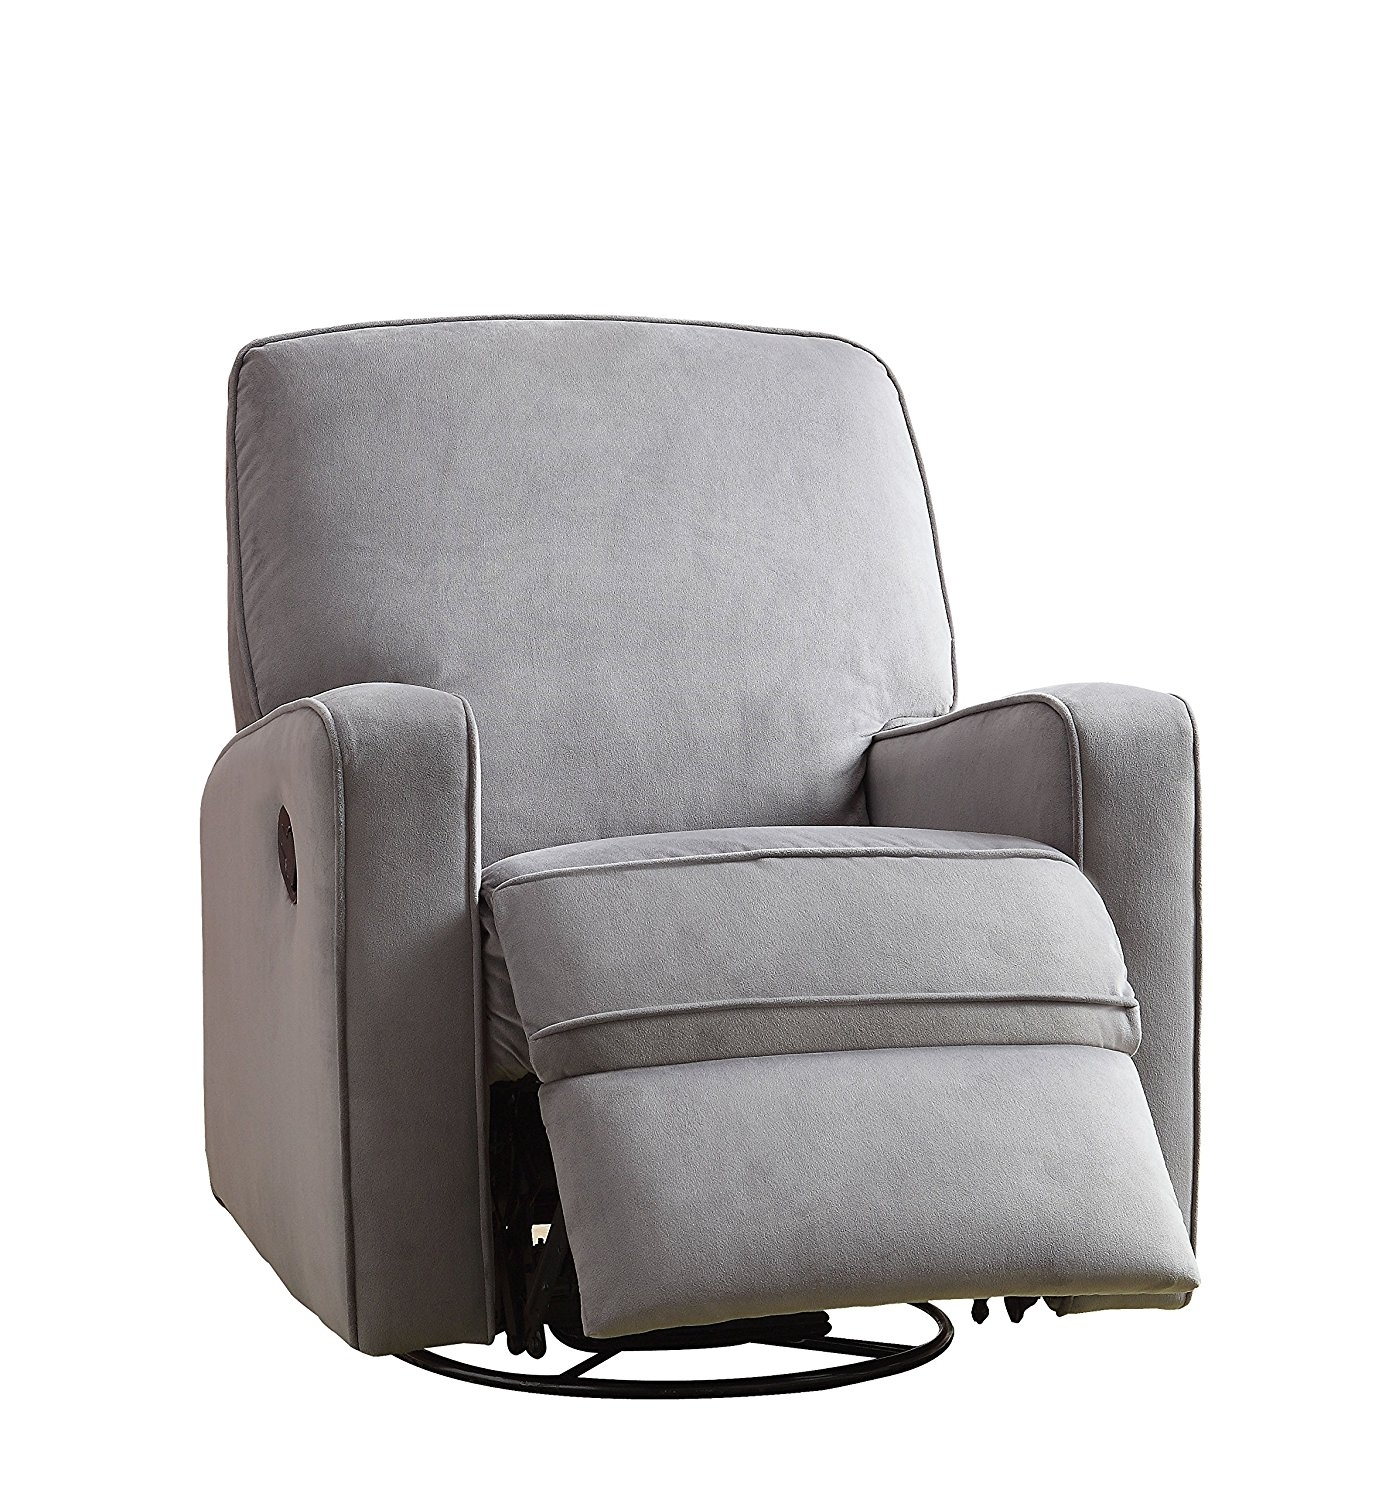 Chair | Leather Recliner Chairs On Sale Reclining Loveseat Brown Regarding Zen Rocking Chairs (View 11 of 15)